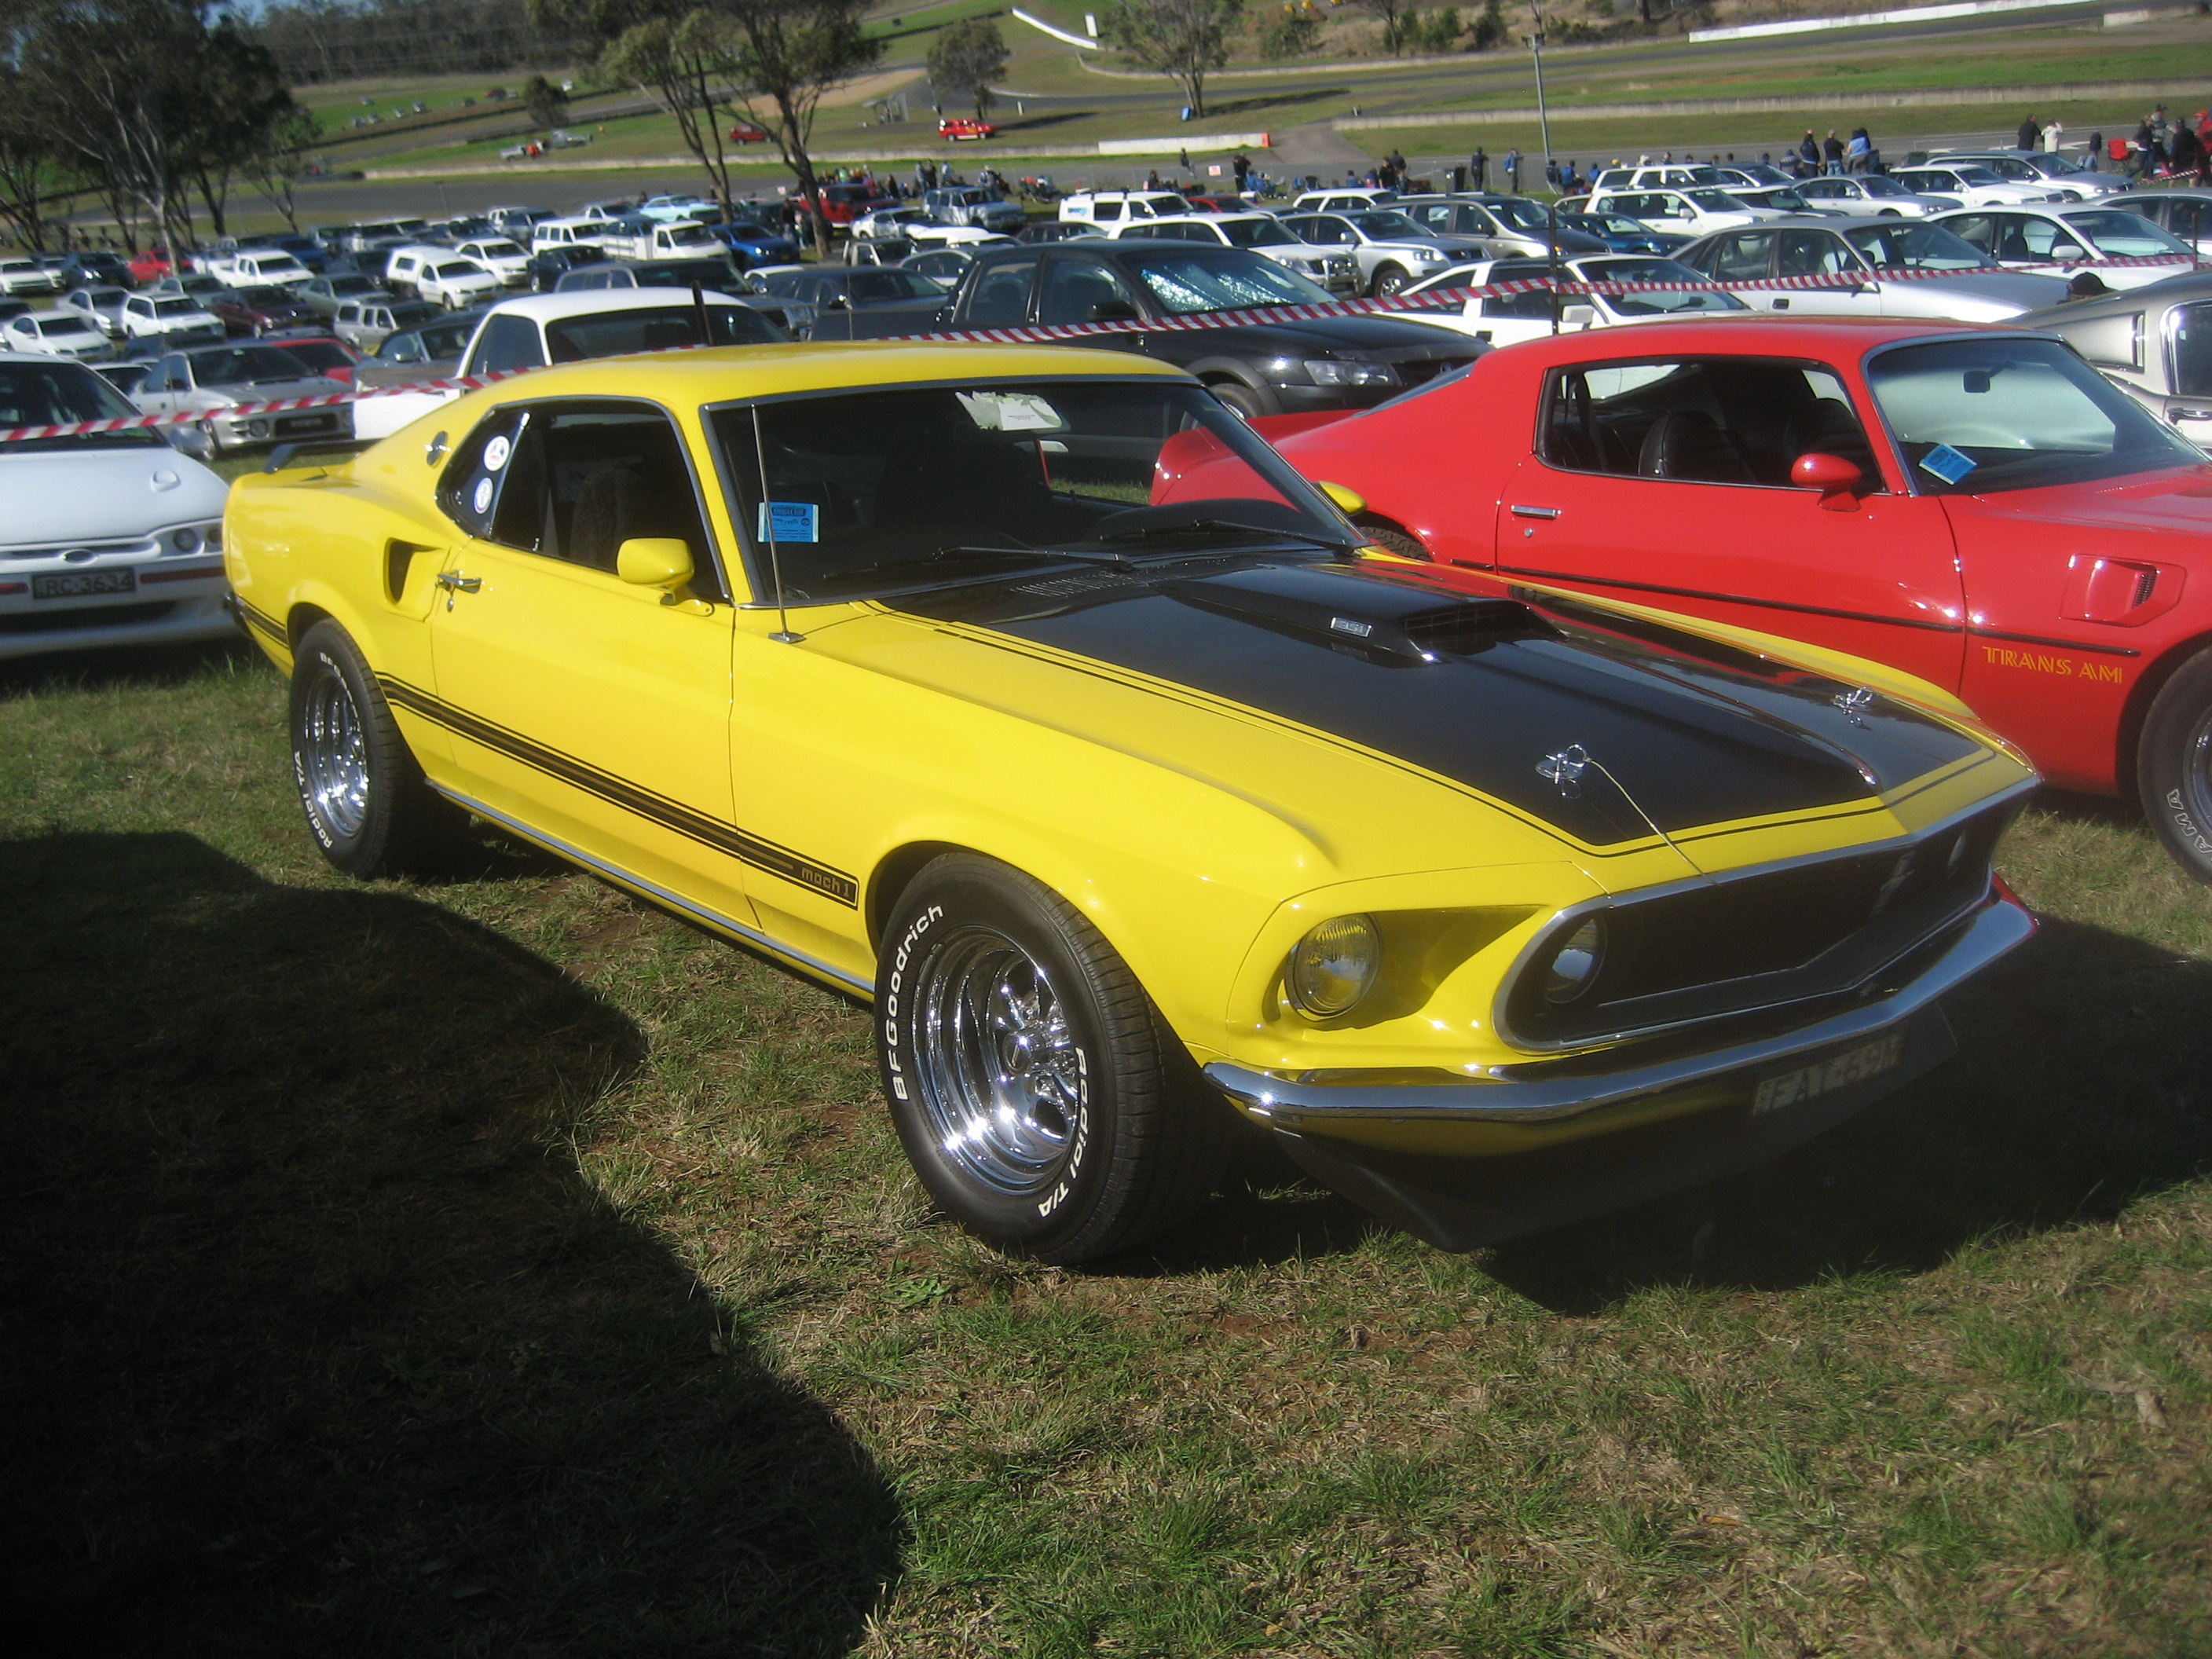 Fileford mustang 351 mach 1 1969 3 jpg